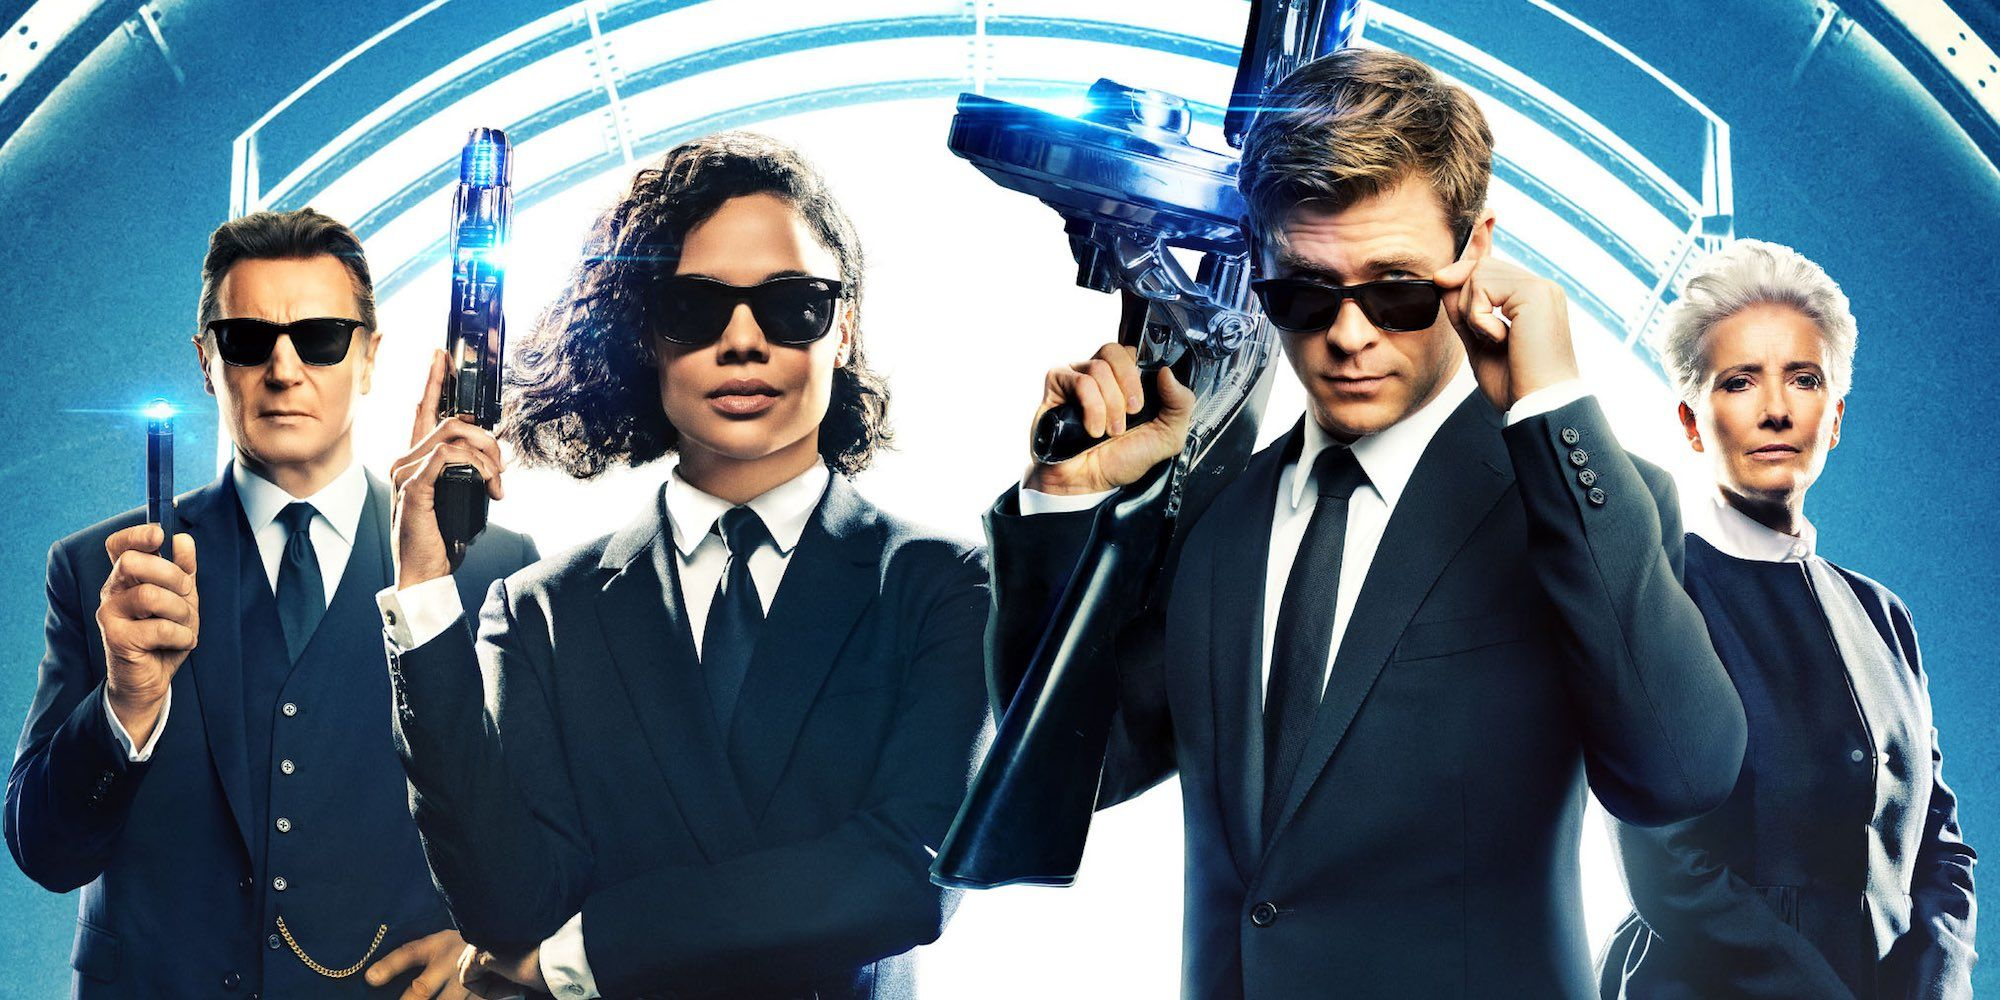 Movie Poster 2019: Does Men In Black: International Have A Post-Credits Scene?